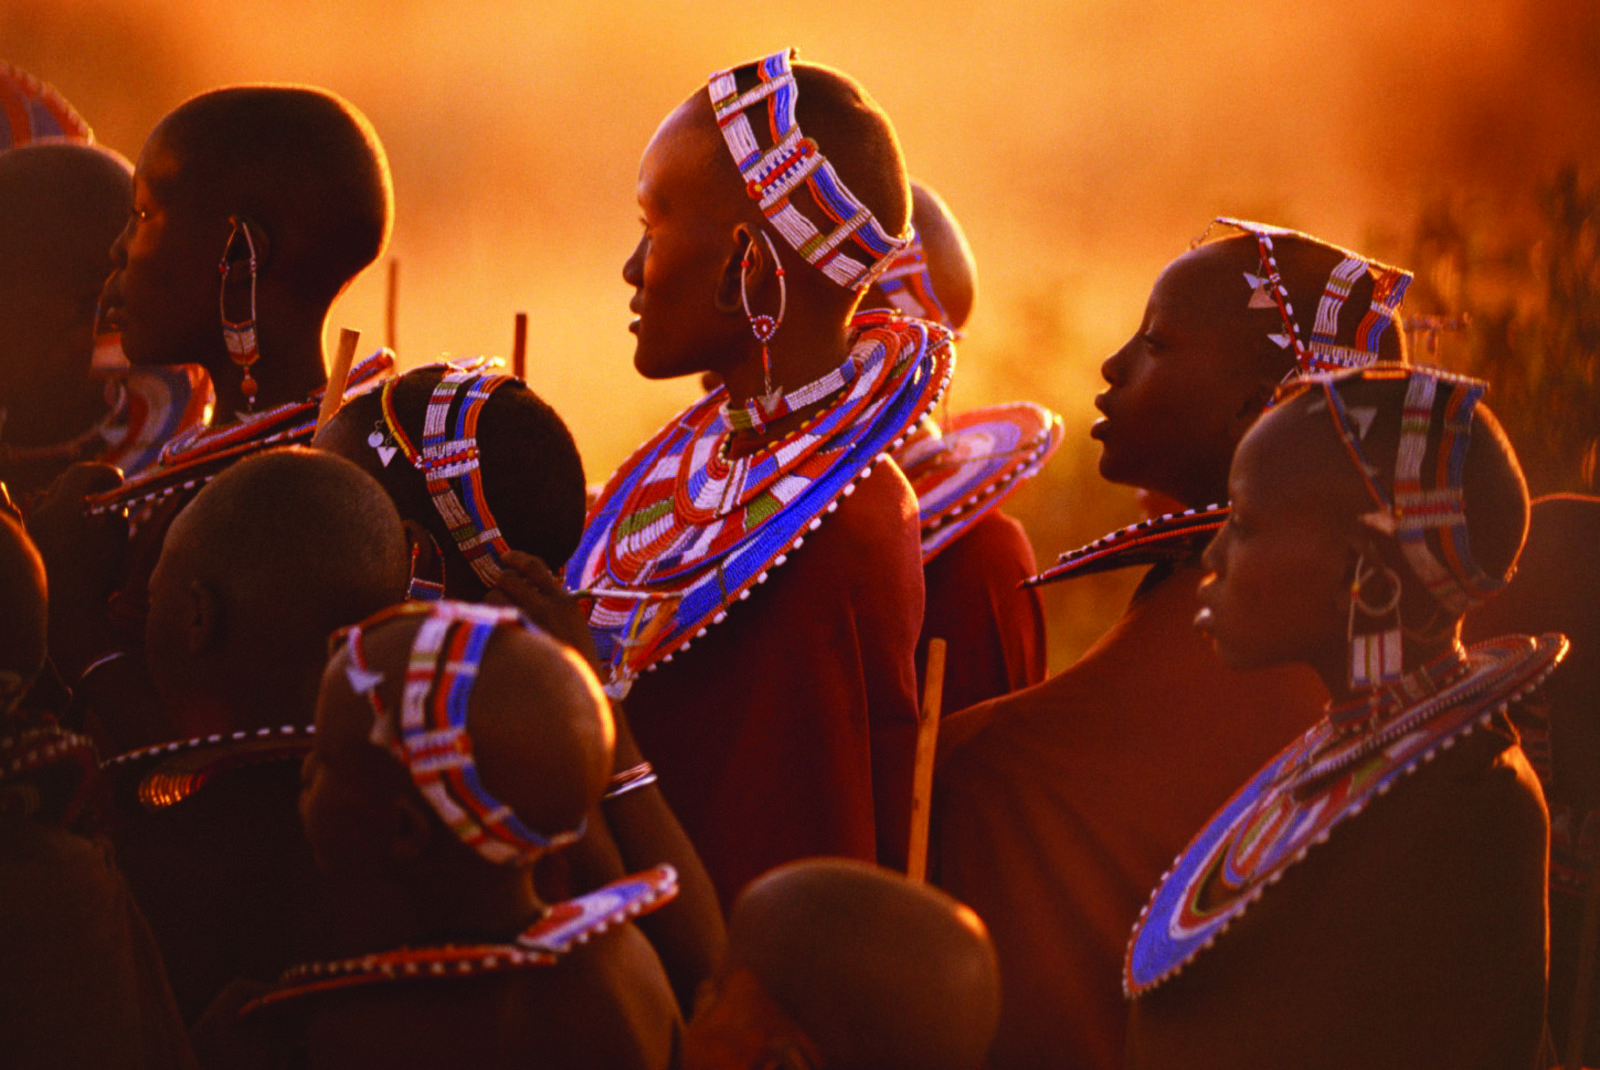 The Maasai people in the East African savanna